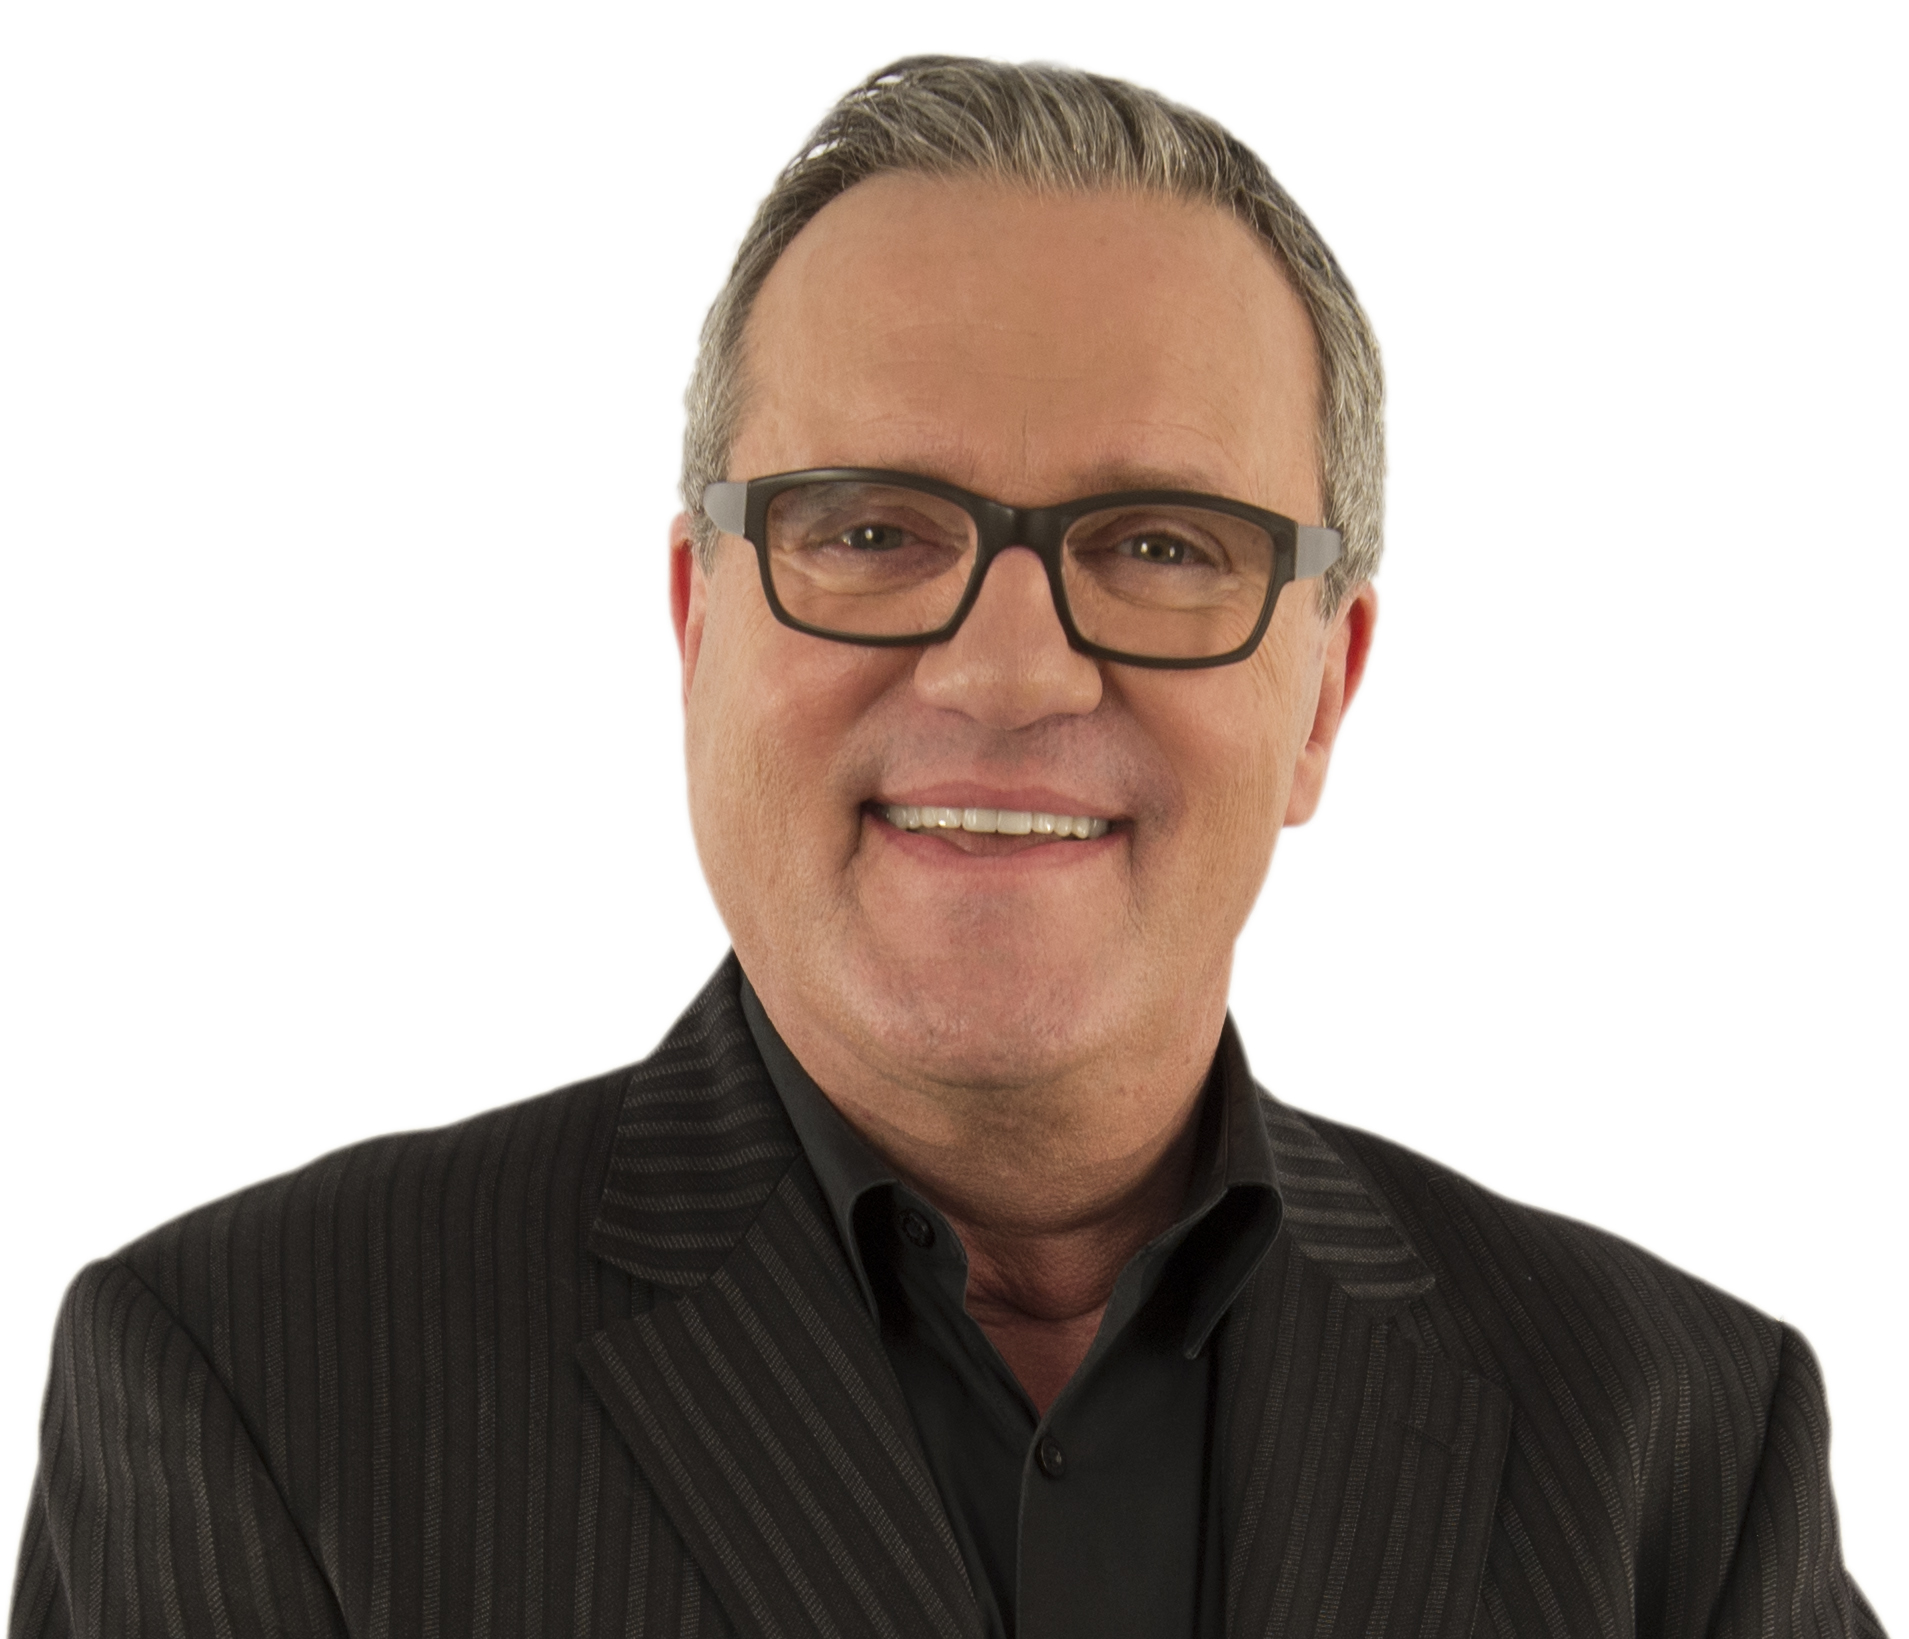 Christian music singer & comedian, Mark Lowry as featured on the Jesus Calling podcast